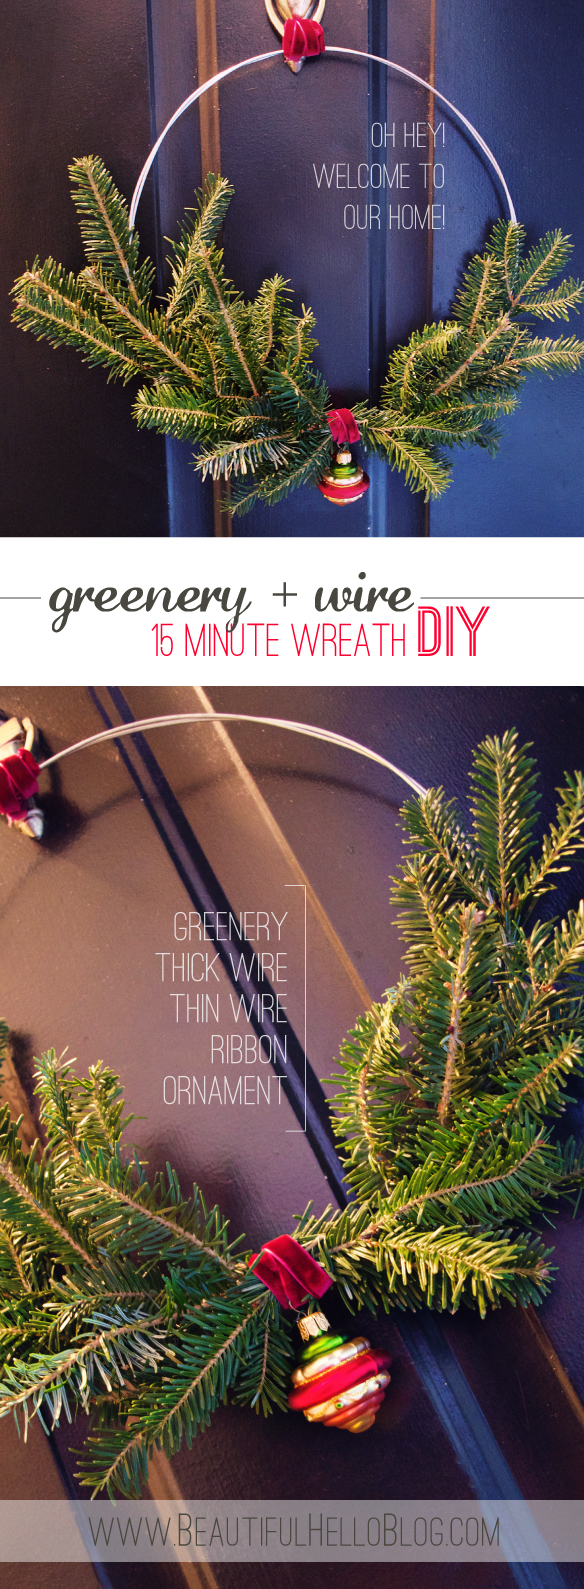 beautiful hello blog greenery and wire wreath DIY